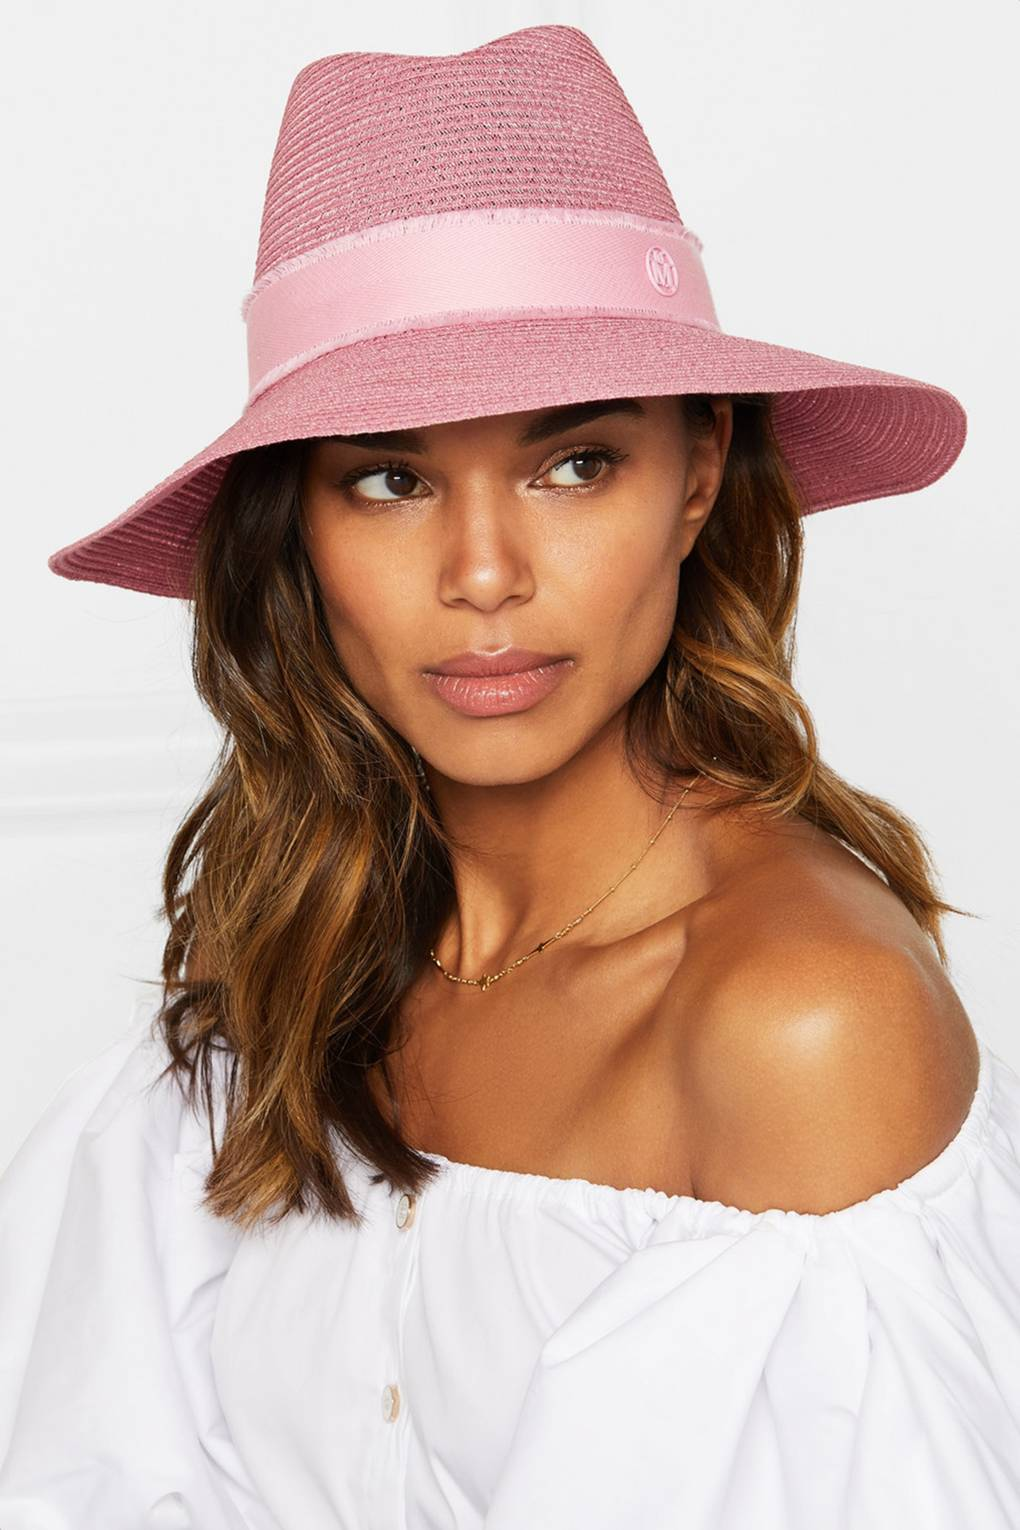 bbad9787f7d Sun Hats  The Best Summer Sun Hats And Caps 2018